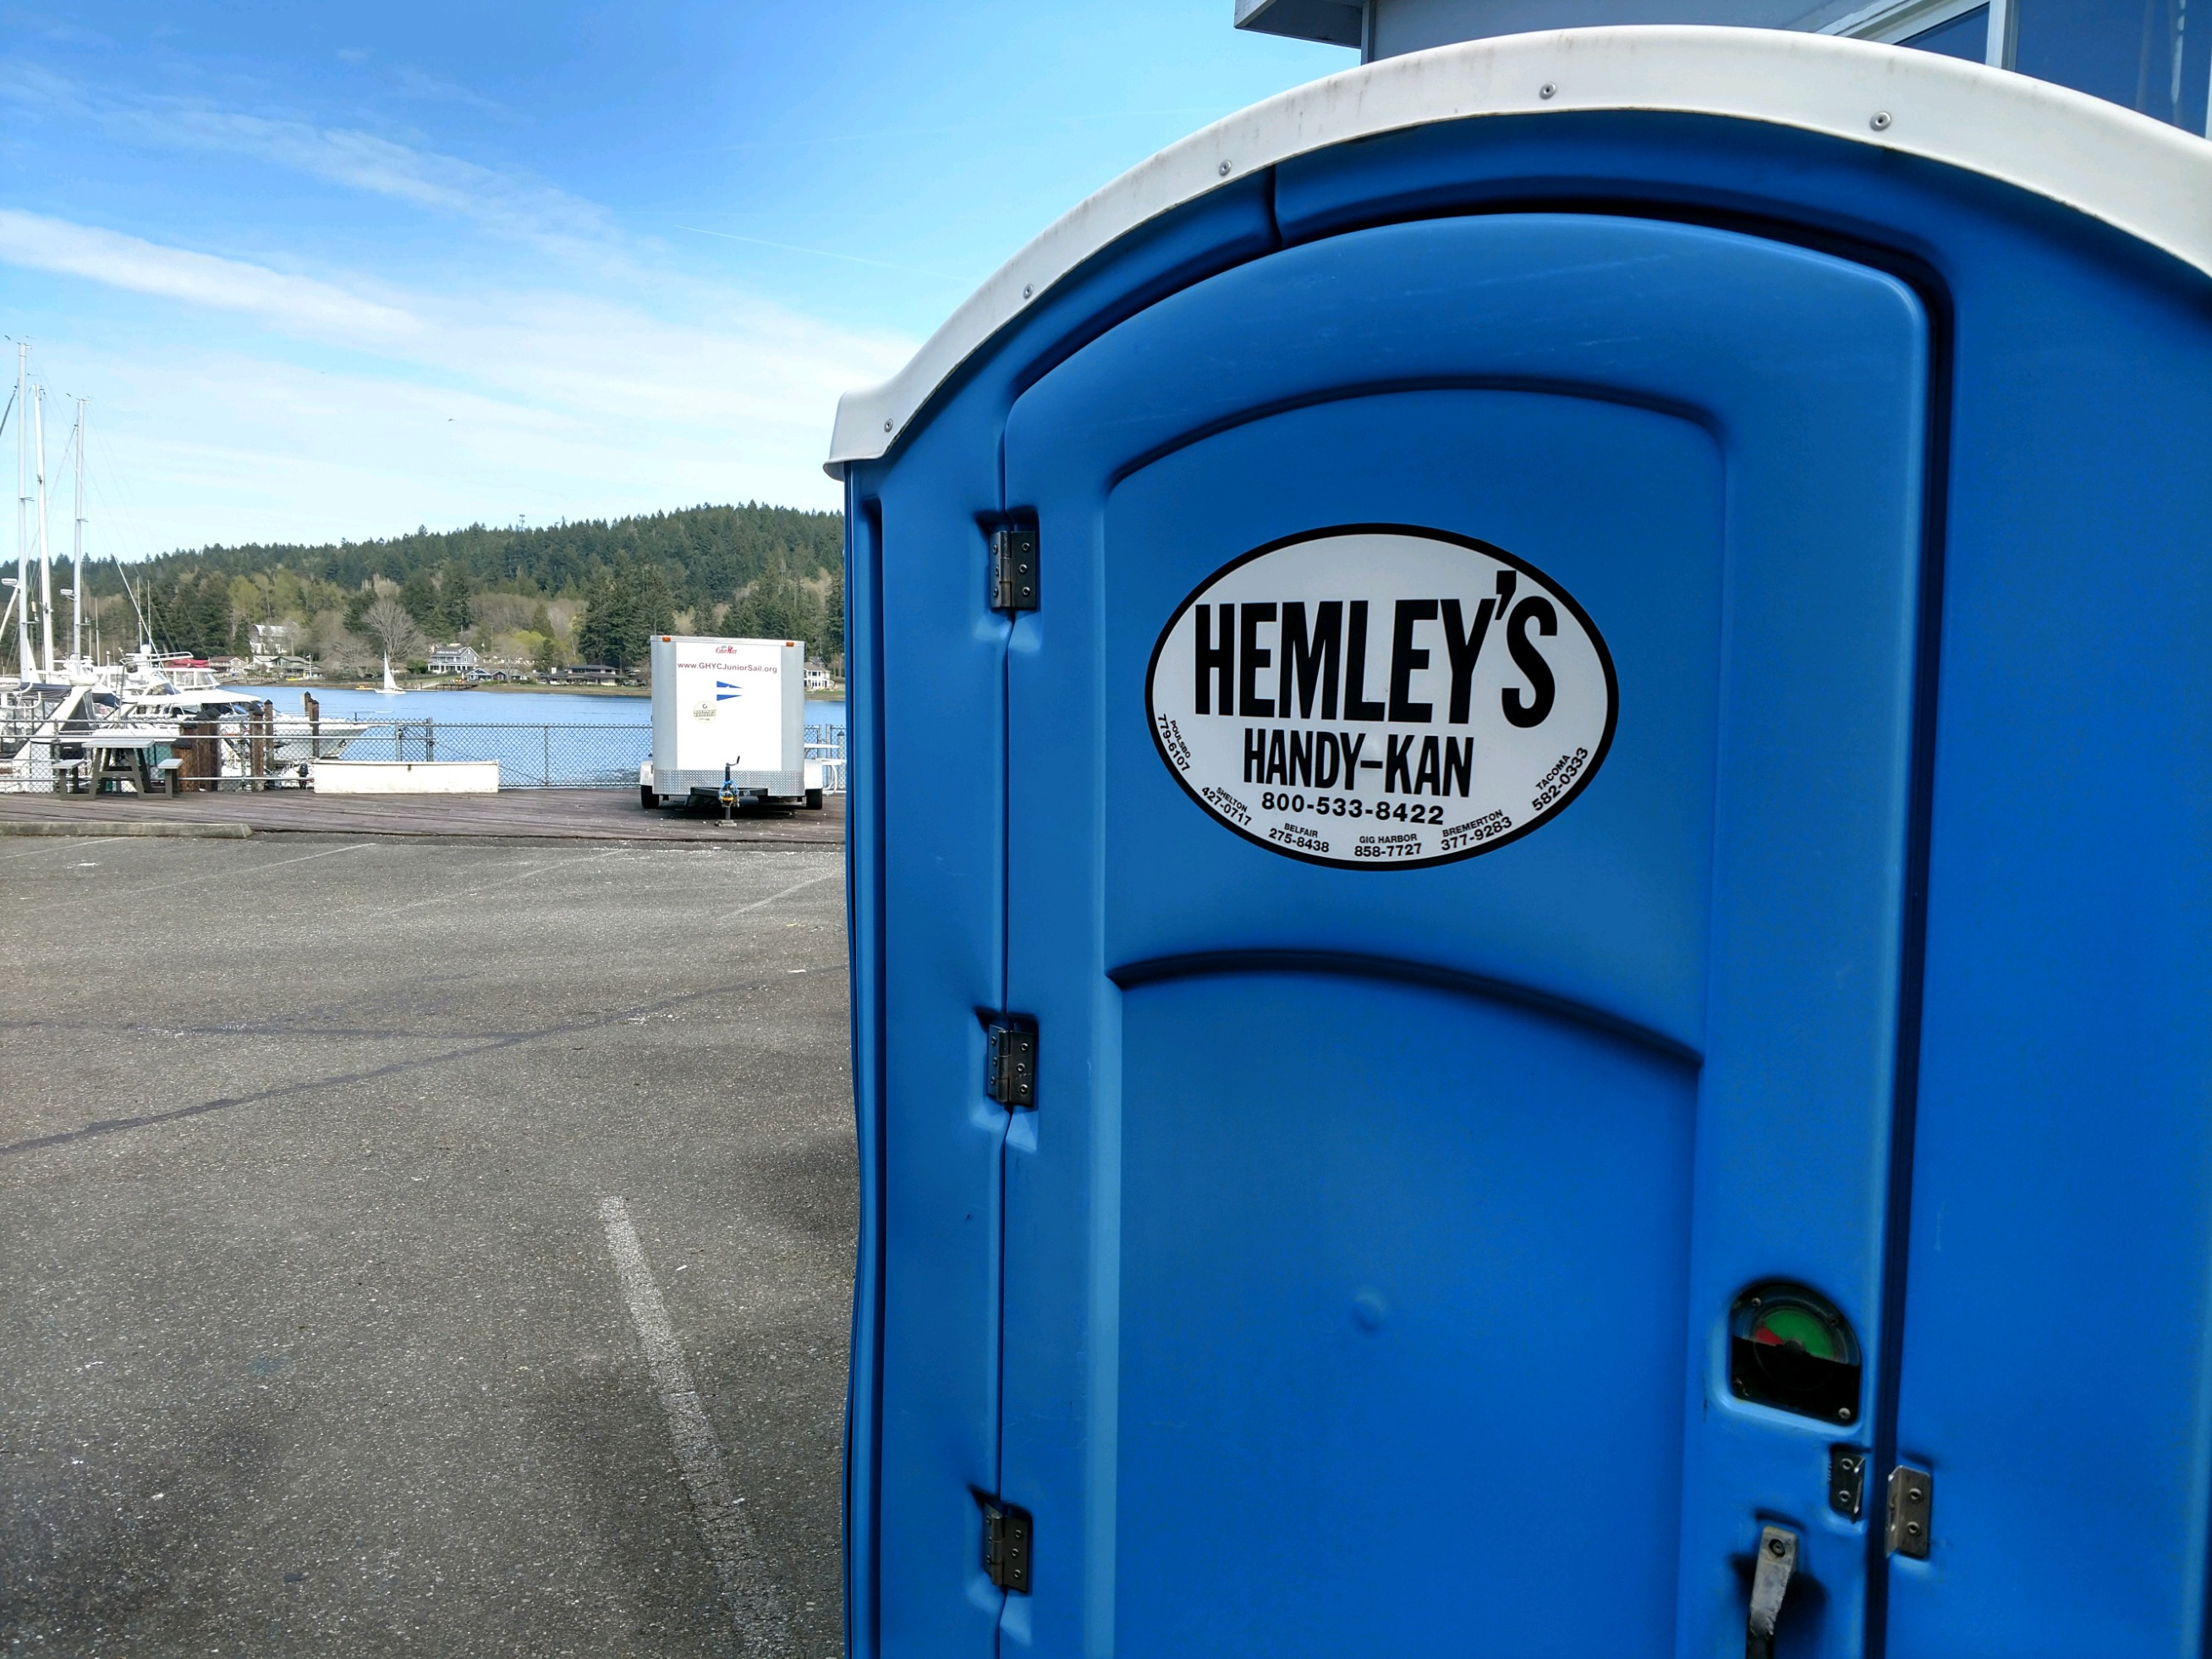 Hemley's Handy-Kan Gig Harbor Thurston County 2019